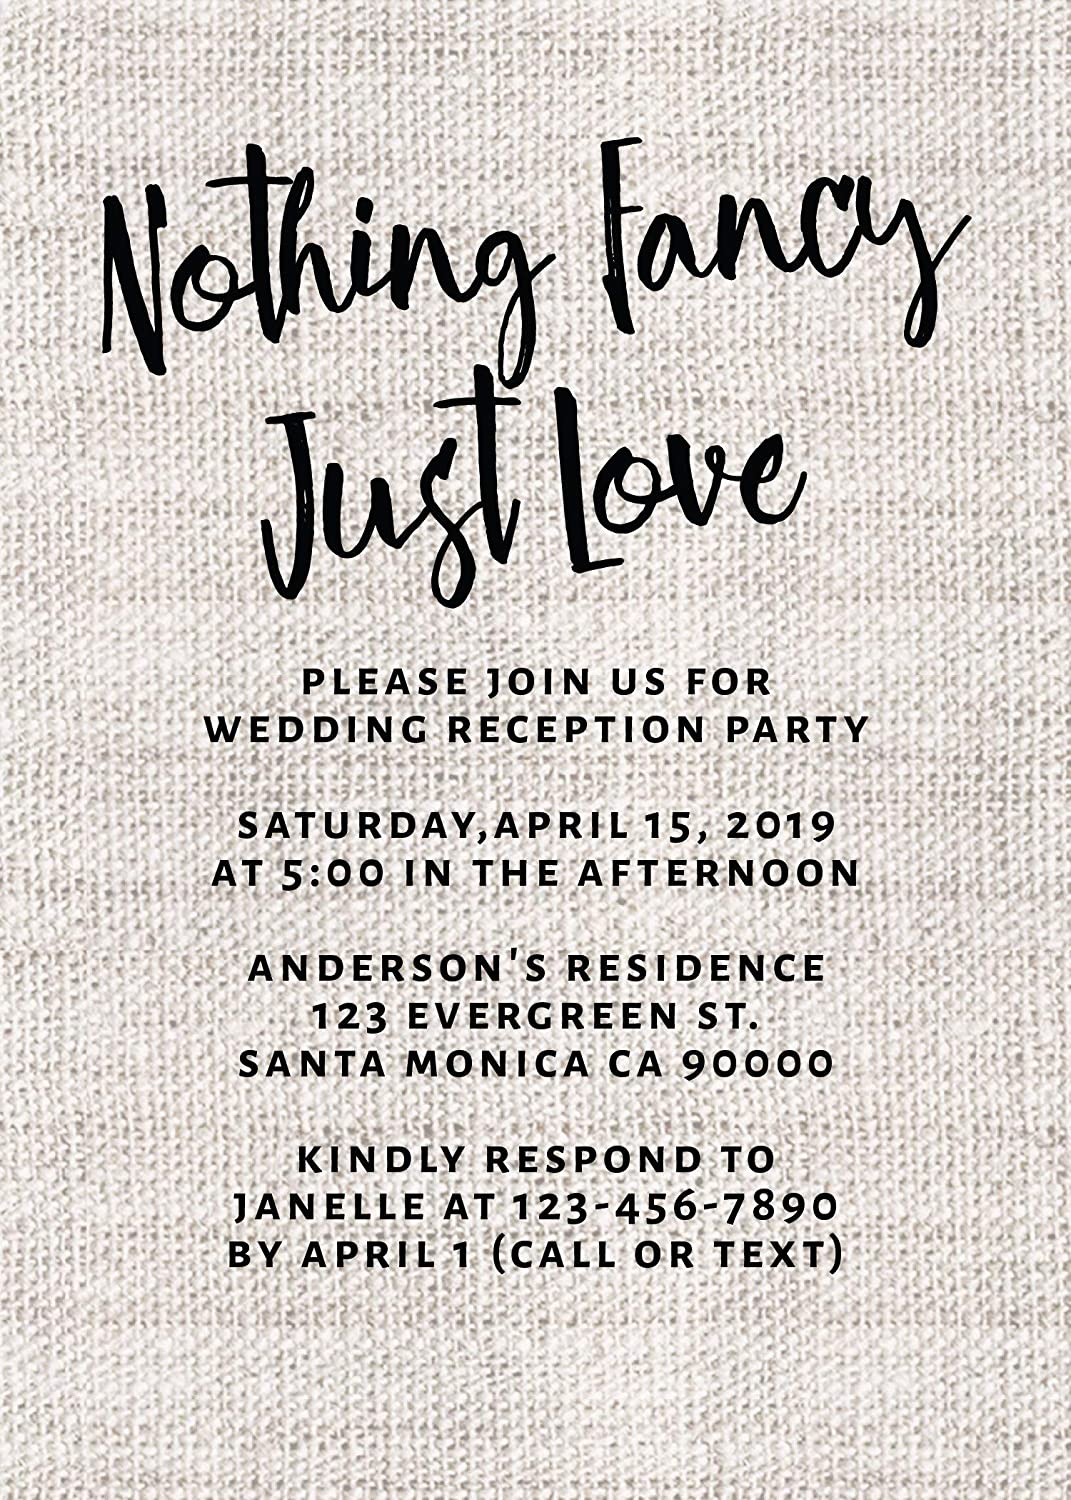 Nothing Fancy Just Love Elopement Wedding Announcement Cards